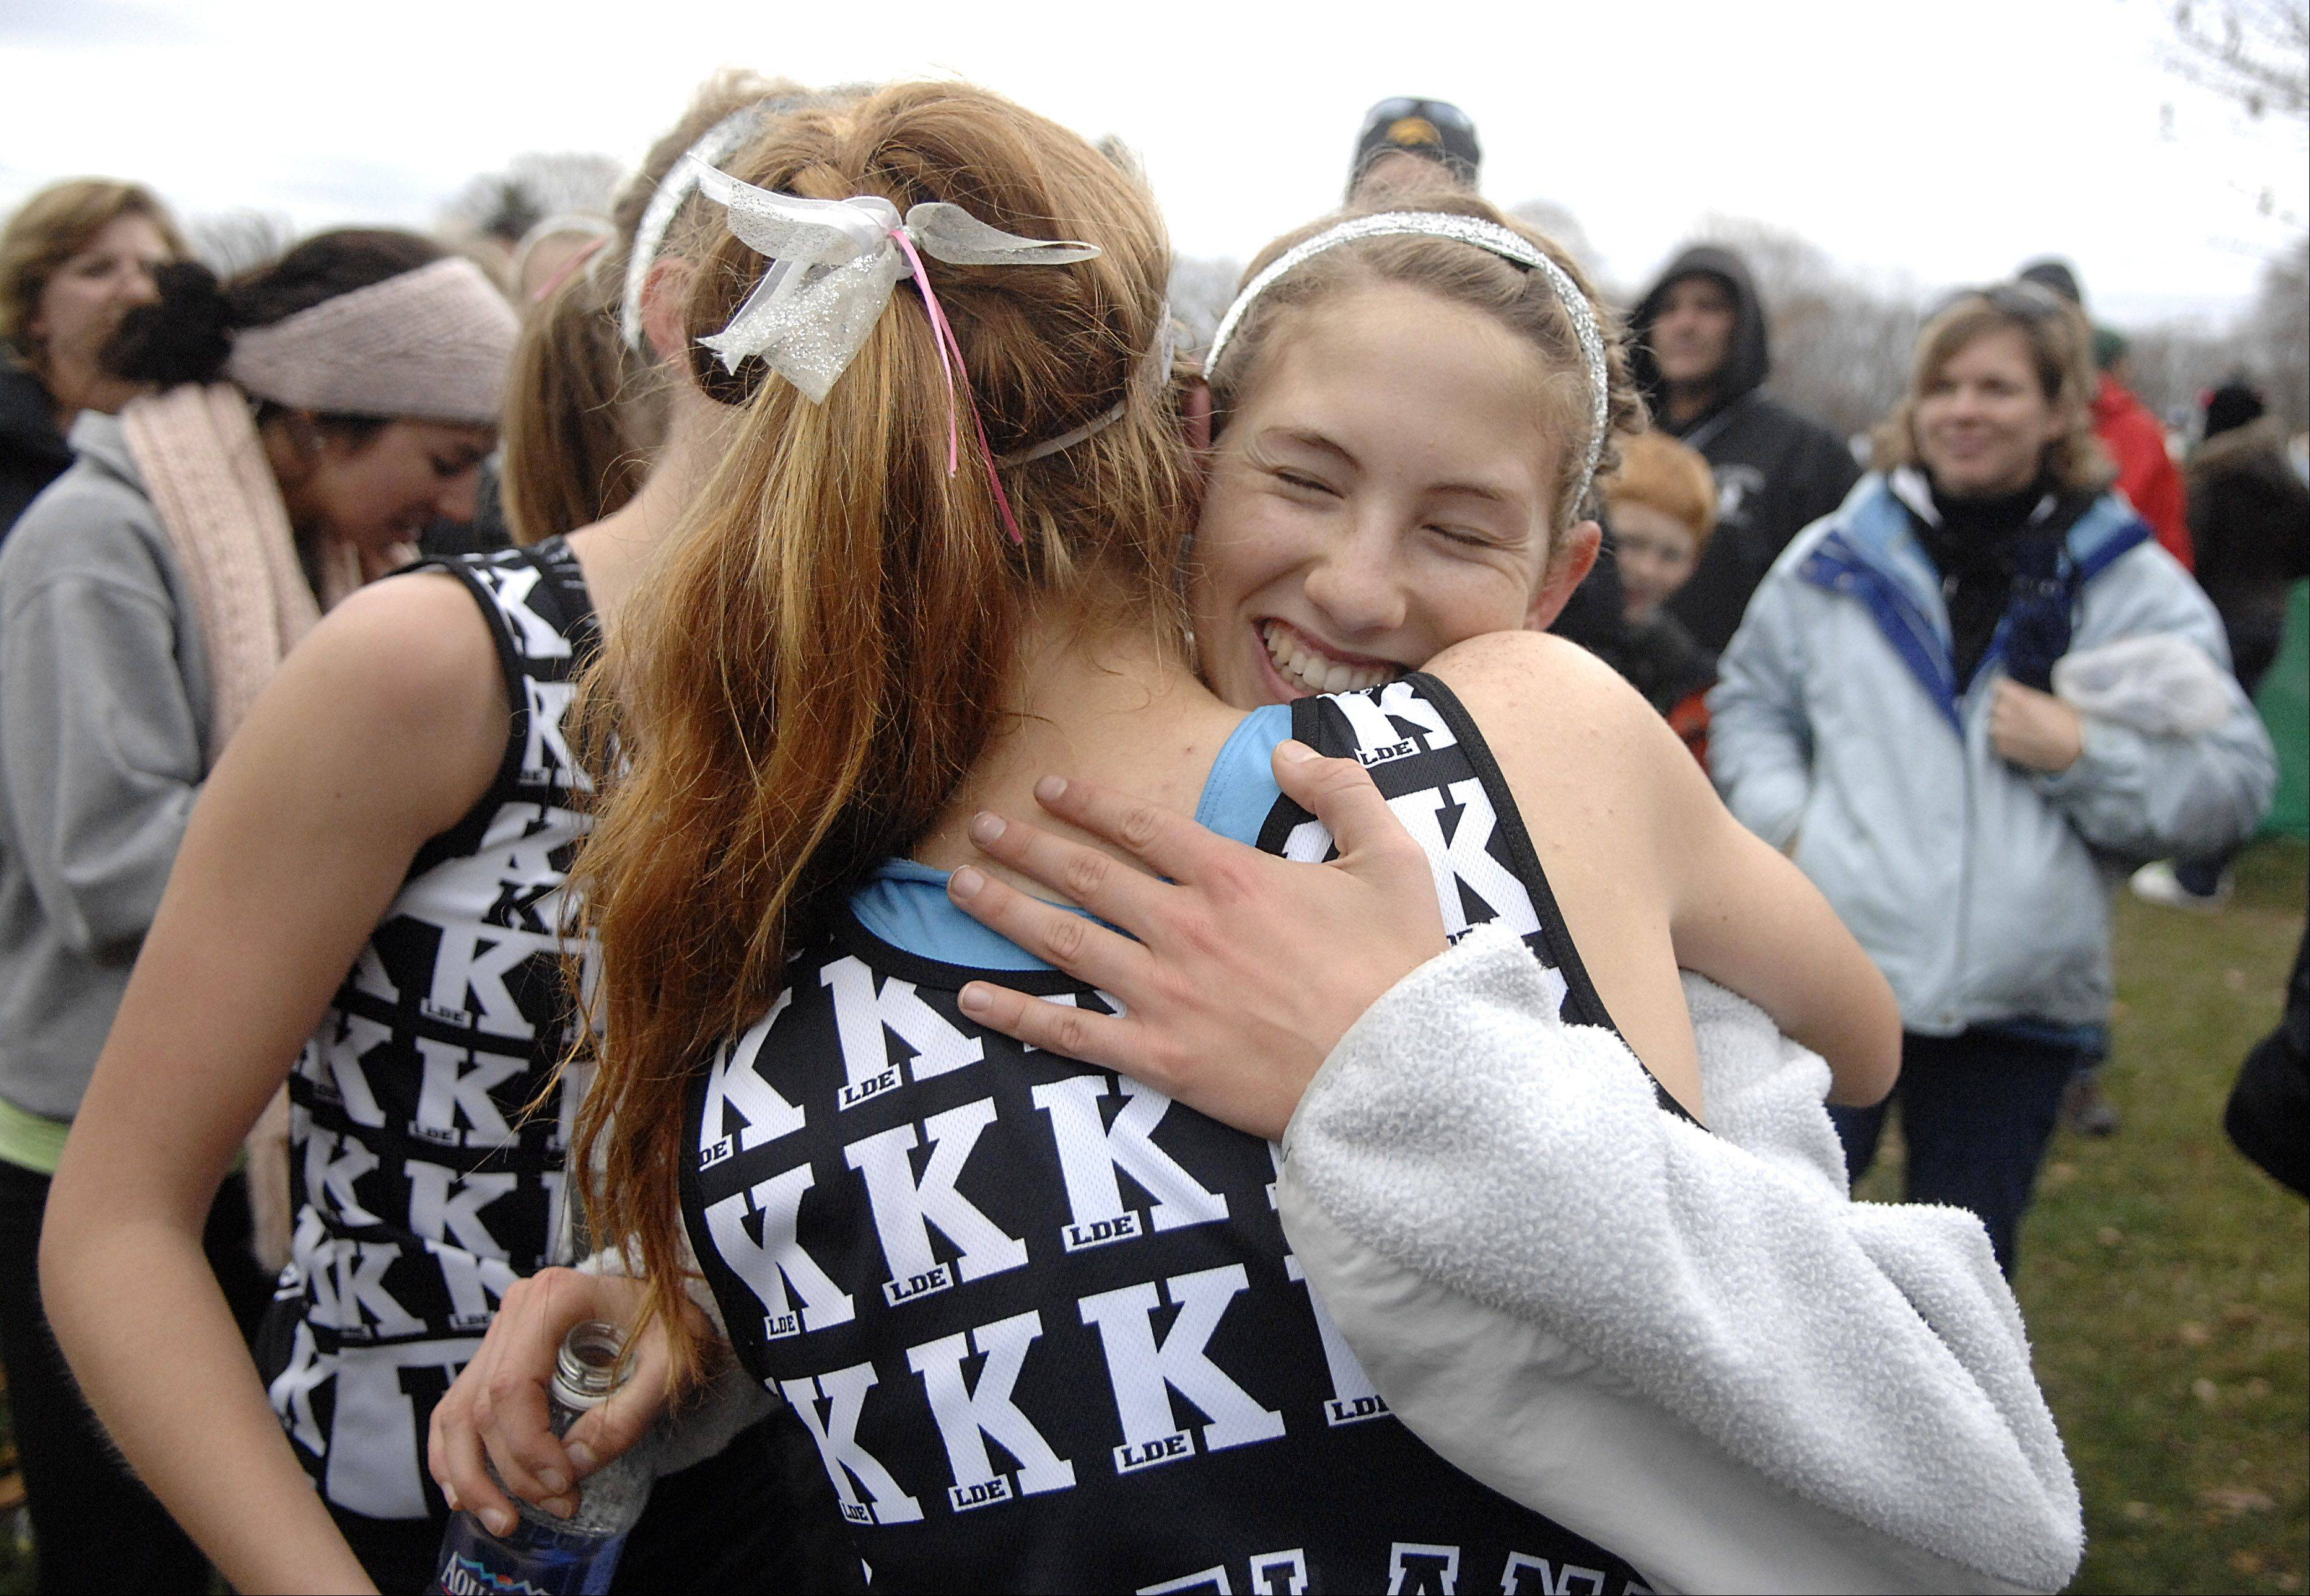 Laura Stoecker/lstoecker@dailyherald.comKaneland's Victoria Clinton gets hugs from teammates Aislinn Losdwig and Sydney Strang after winning the 2A state cross country final in Peoria on Saturday, November 3.